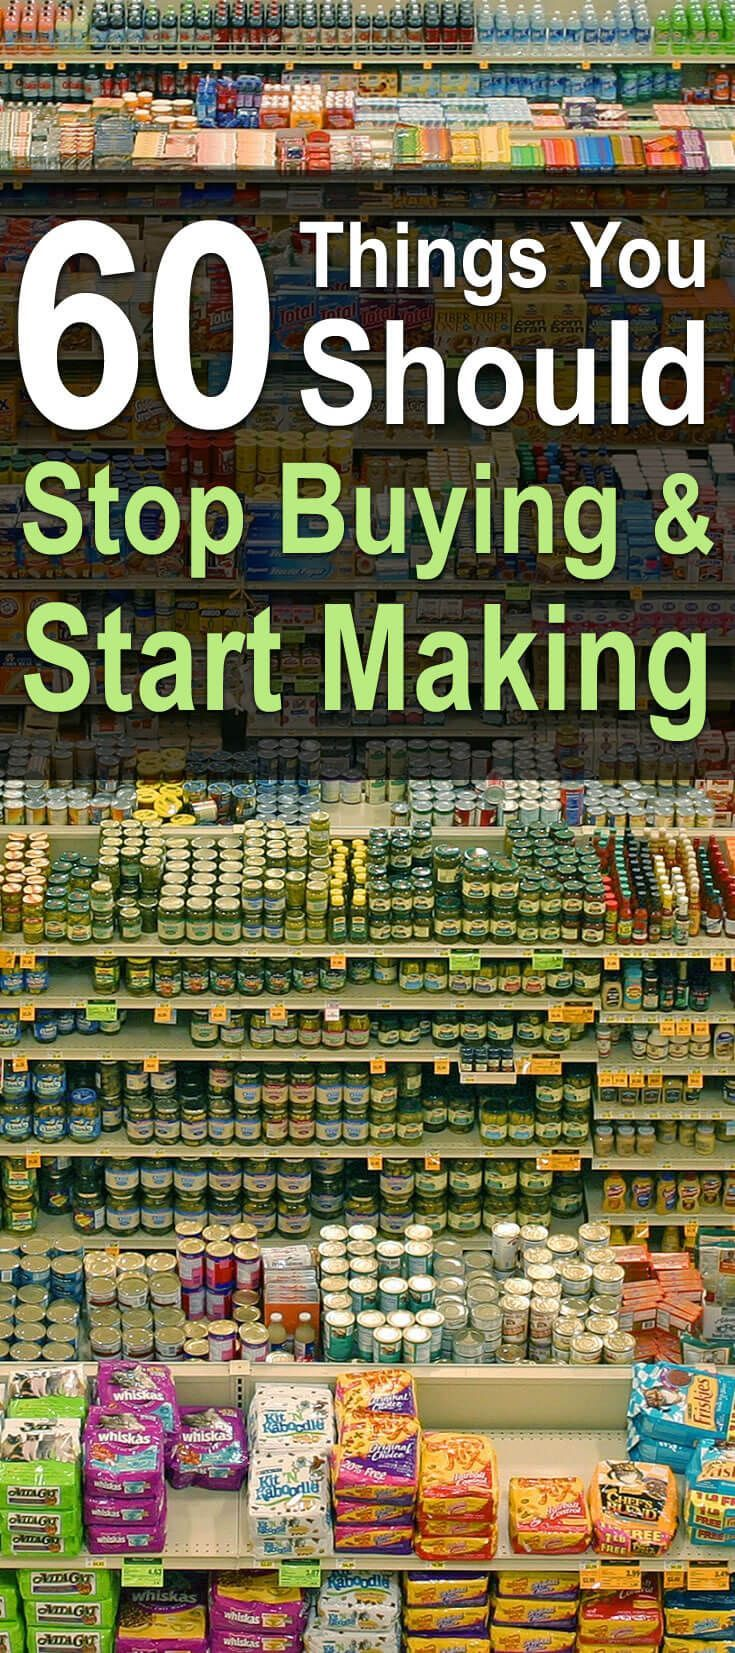 60 Things You Should Stop Buying and Start Making.